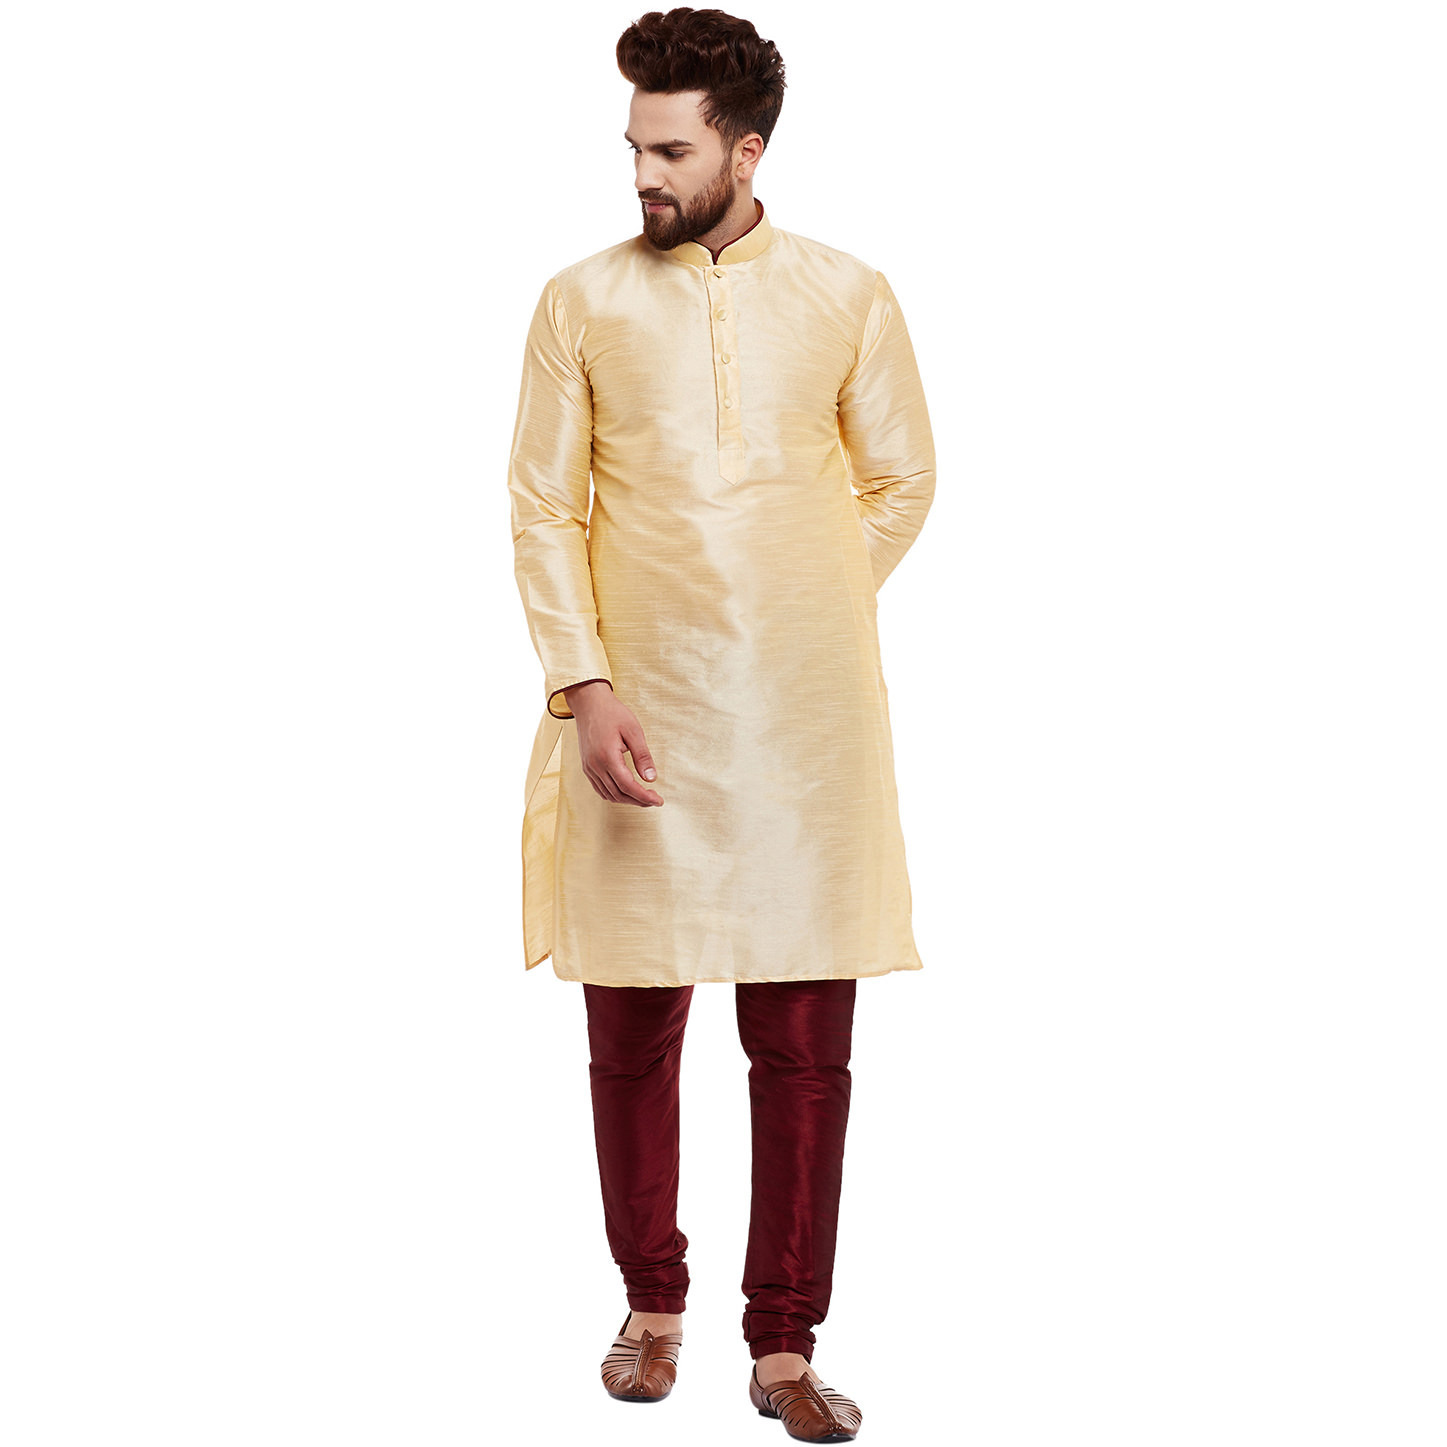 Mens Dupion Silk Golden Solid Designer Kurta Churidaar Set Long Sleeve Ban collar Regular Fit